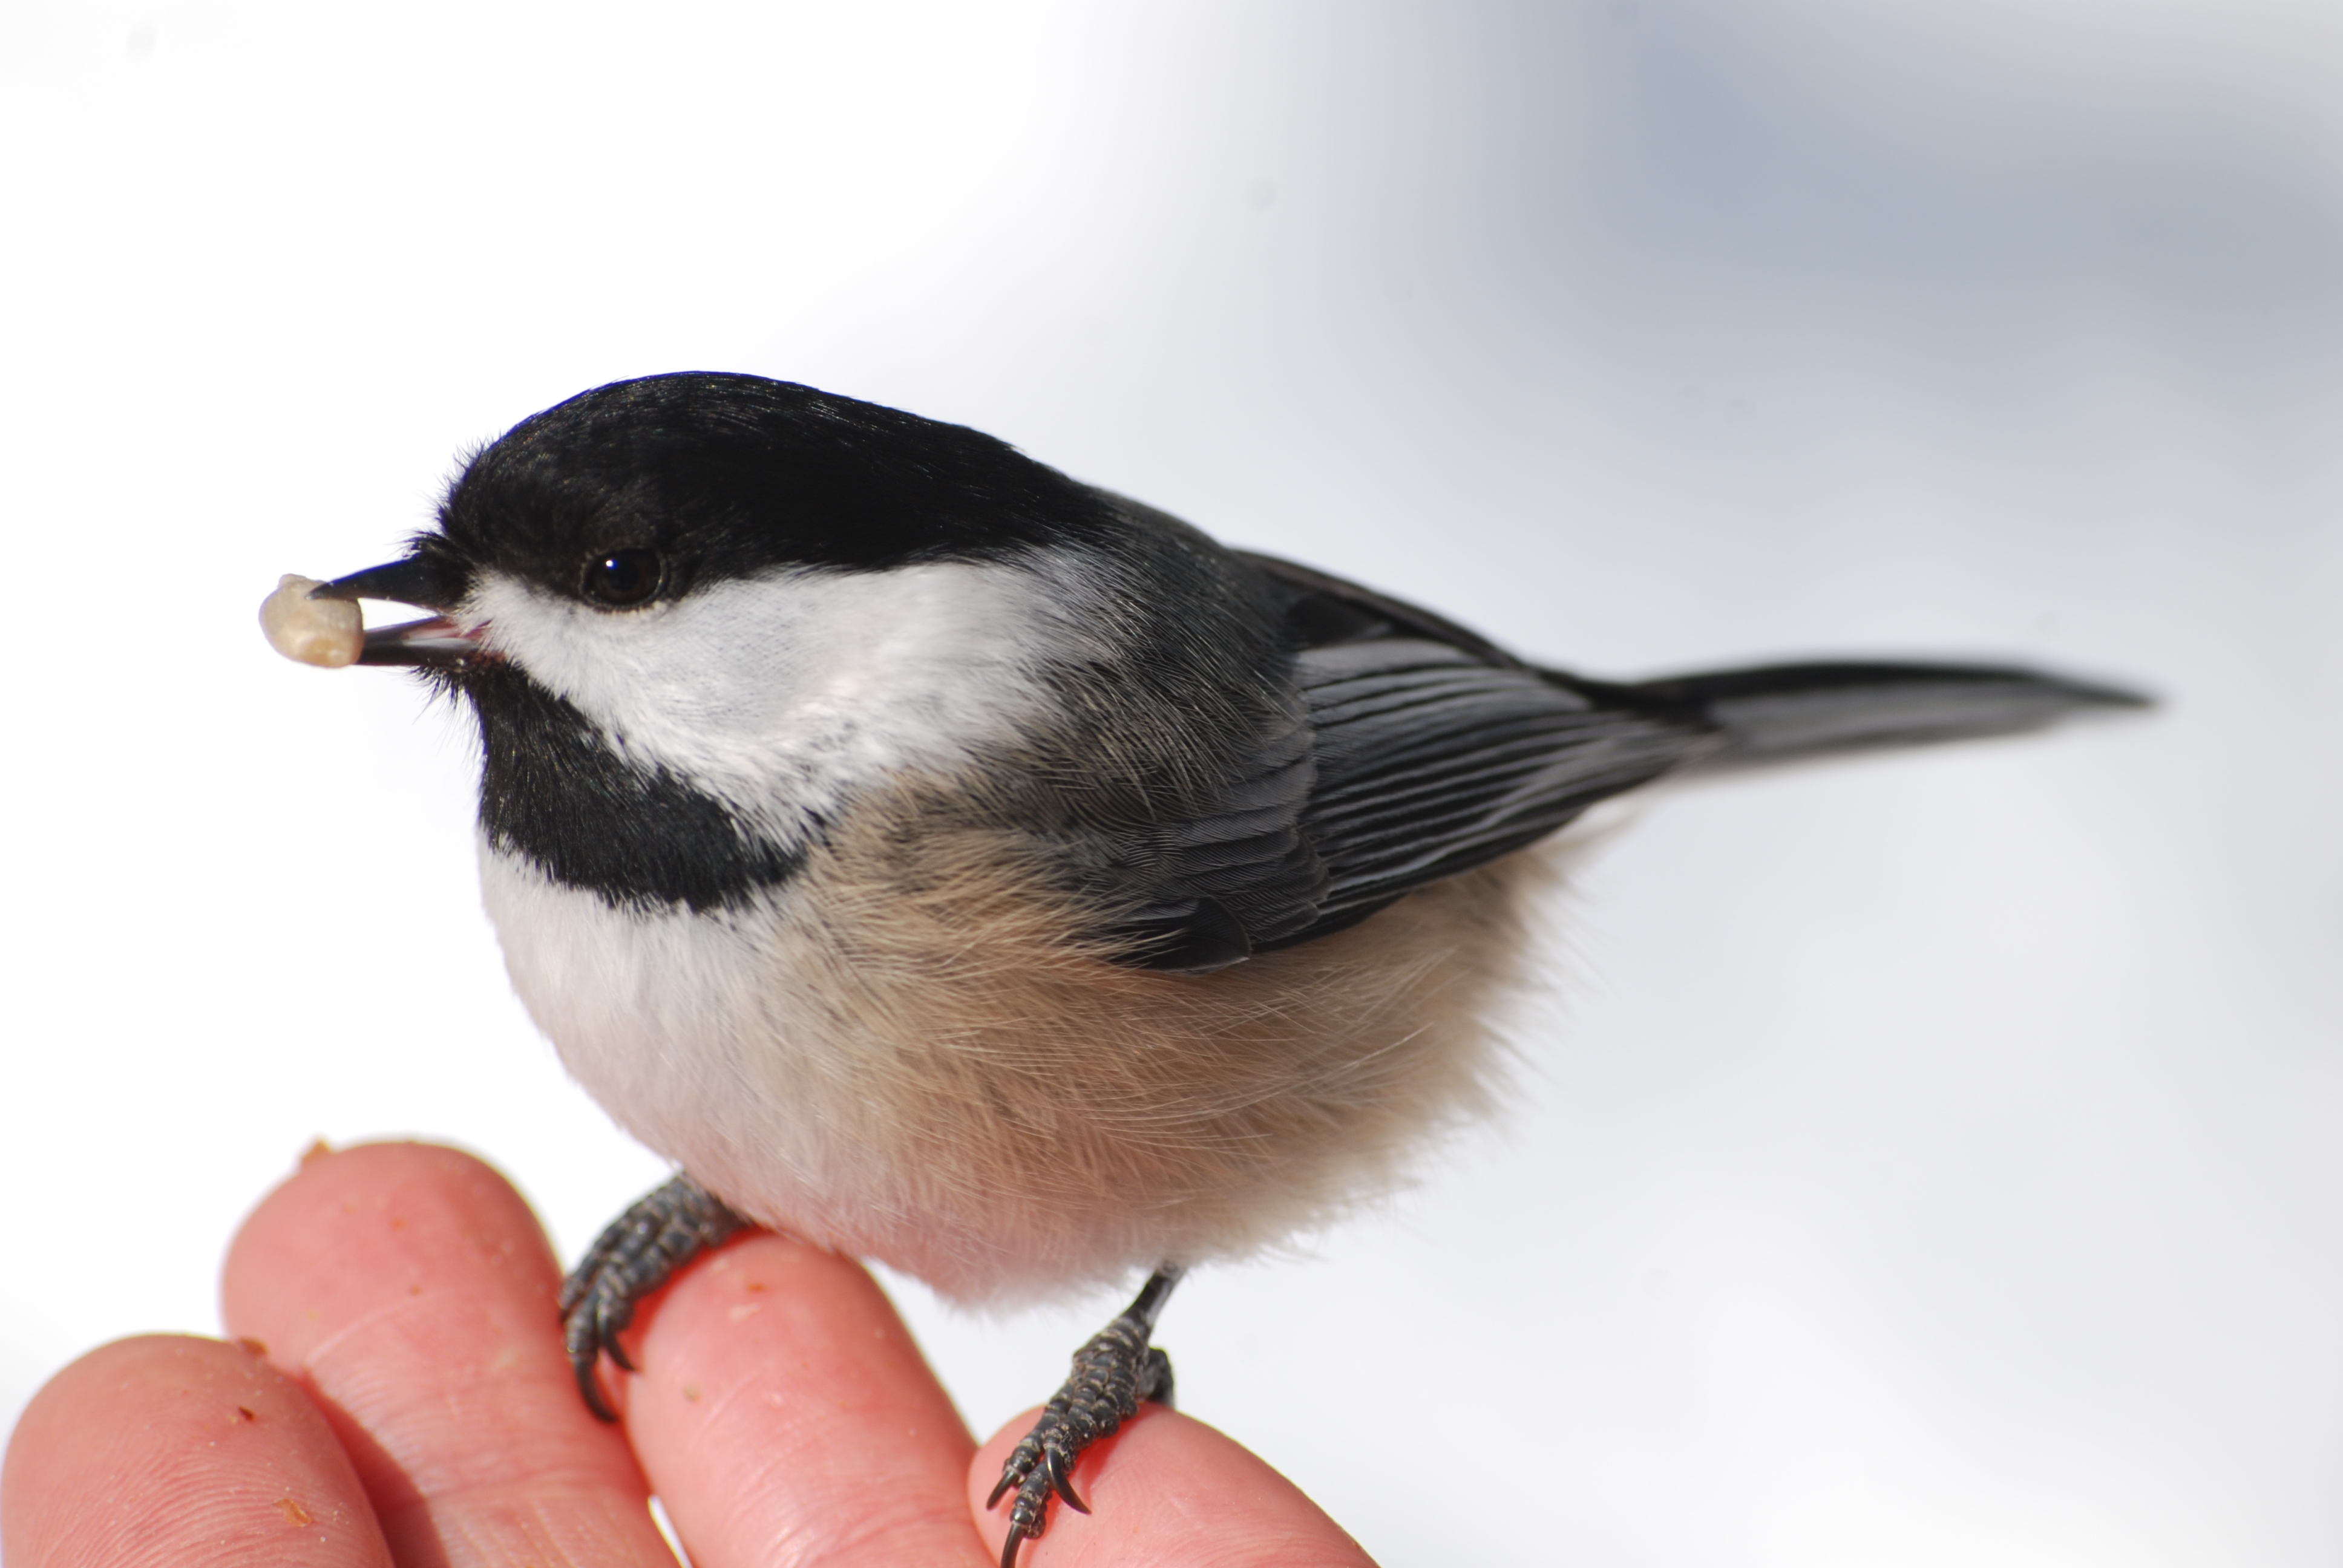 Chickadee eating from our hands